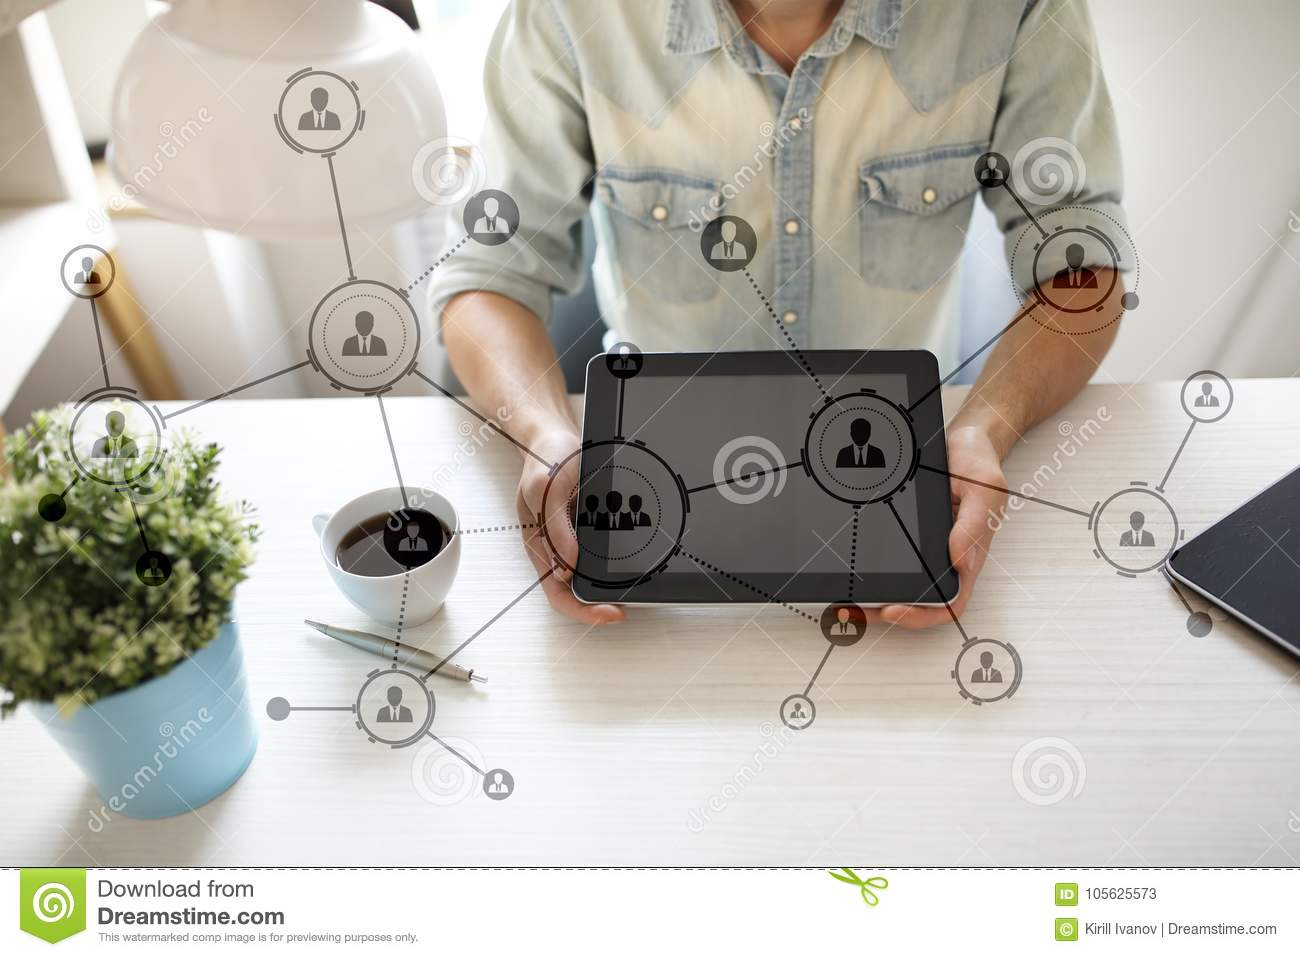 Organisation structure. People`s social networ. Business and technology concept.